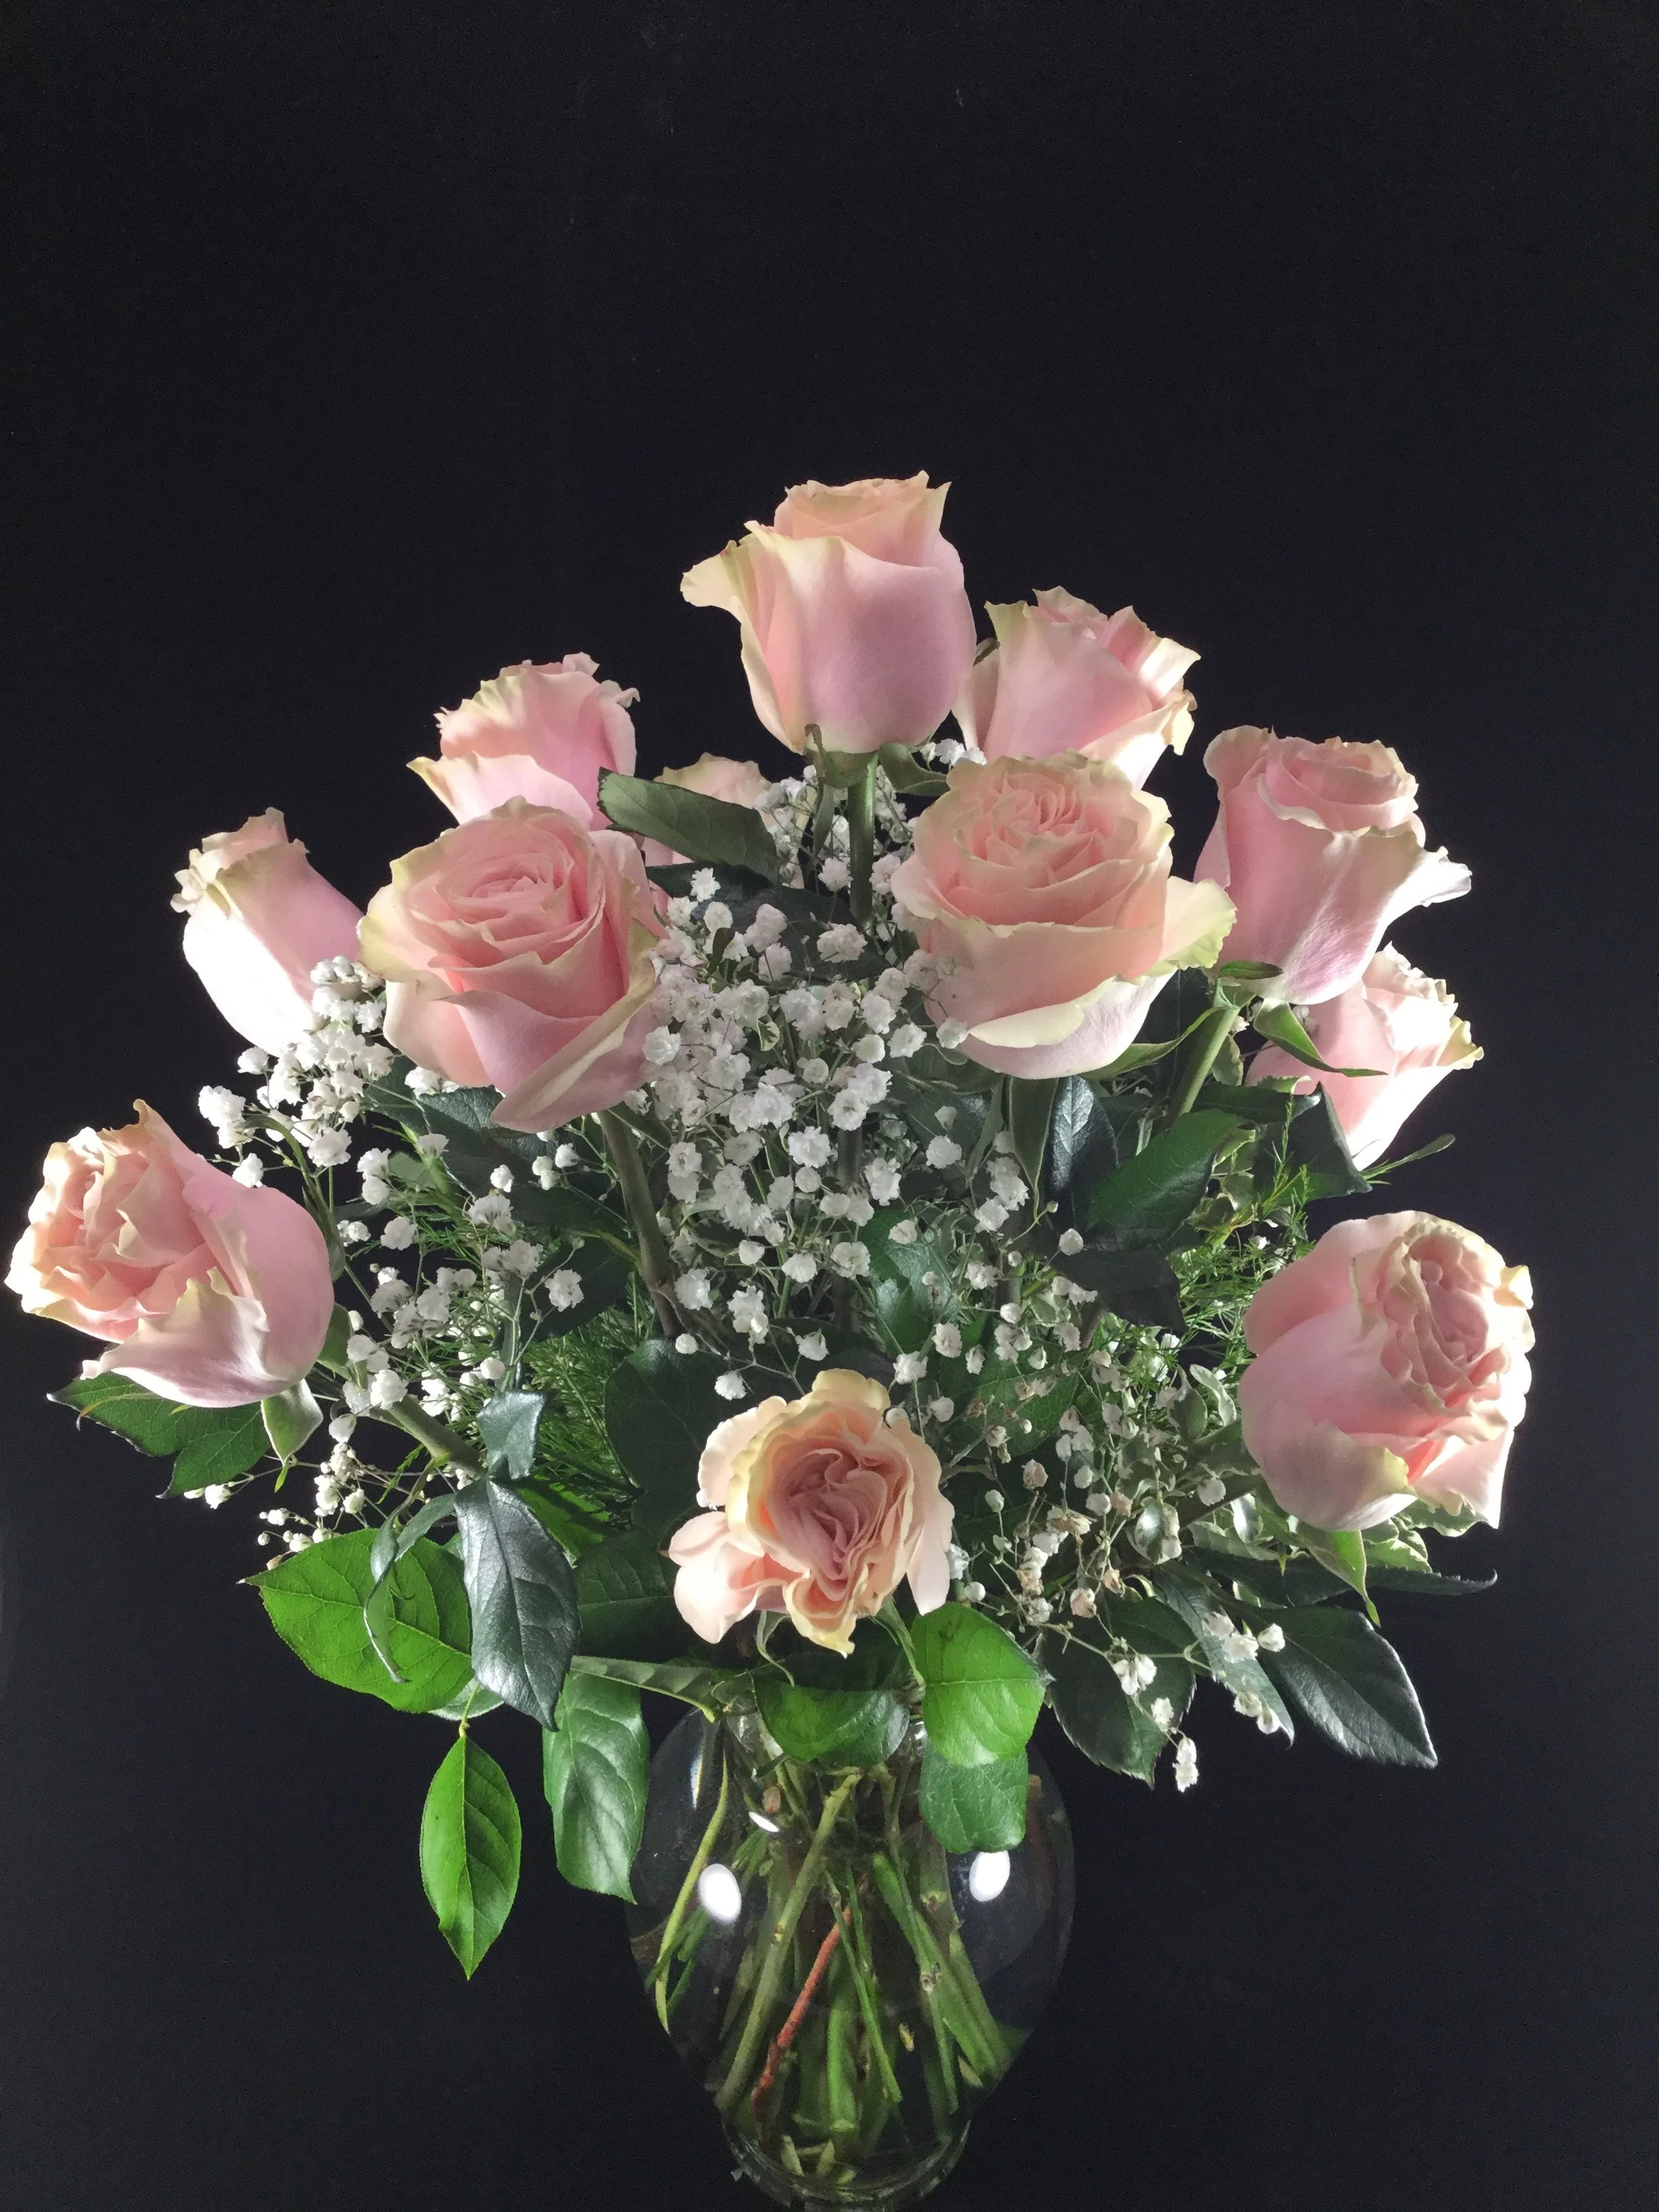 pretty pink rose in